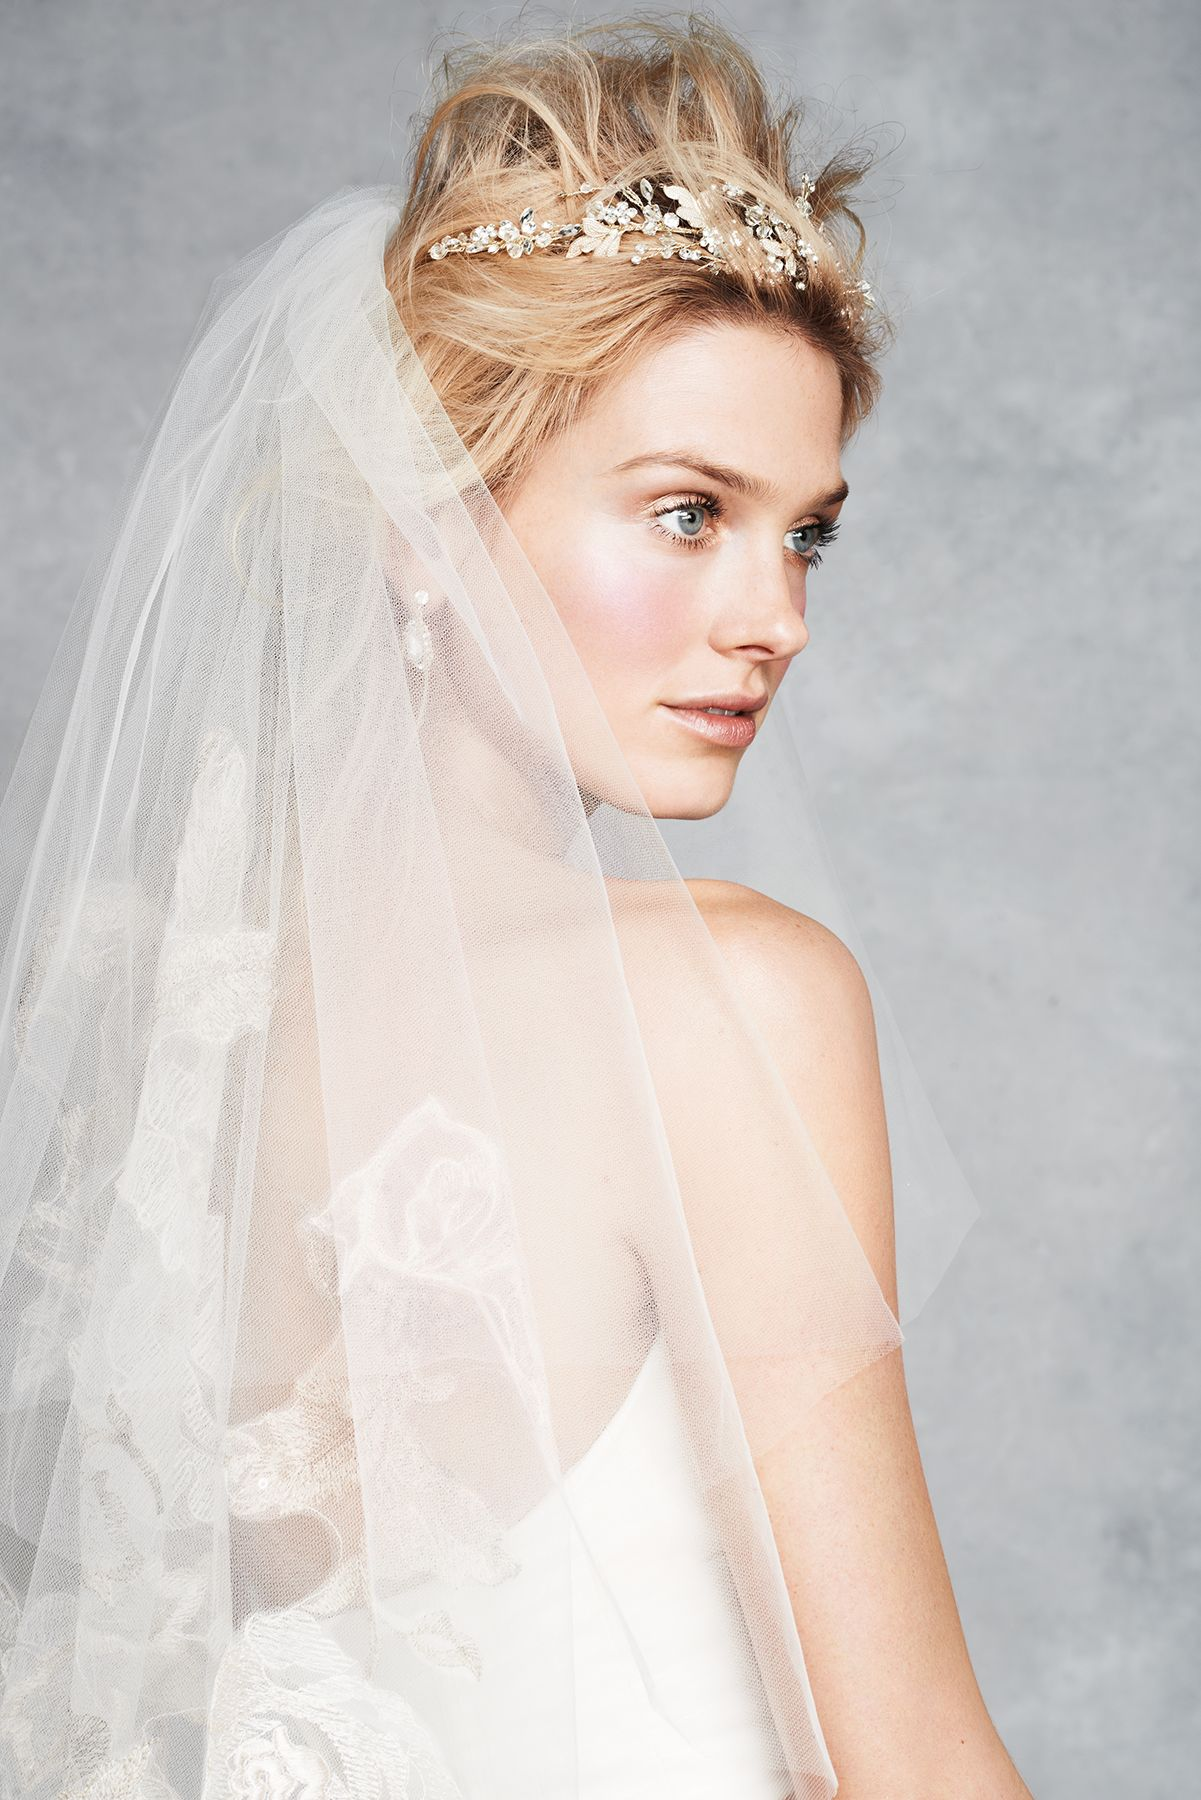 Bridal veils tiaras and jewelry wedding hairstyles with